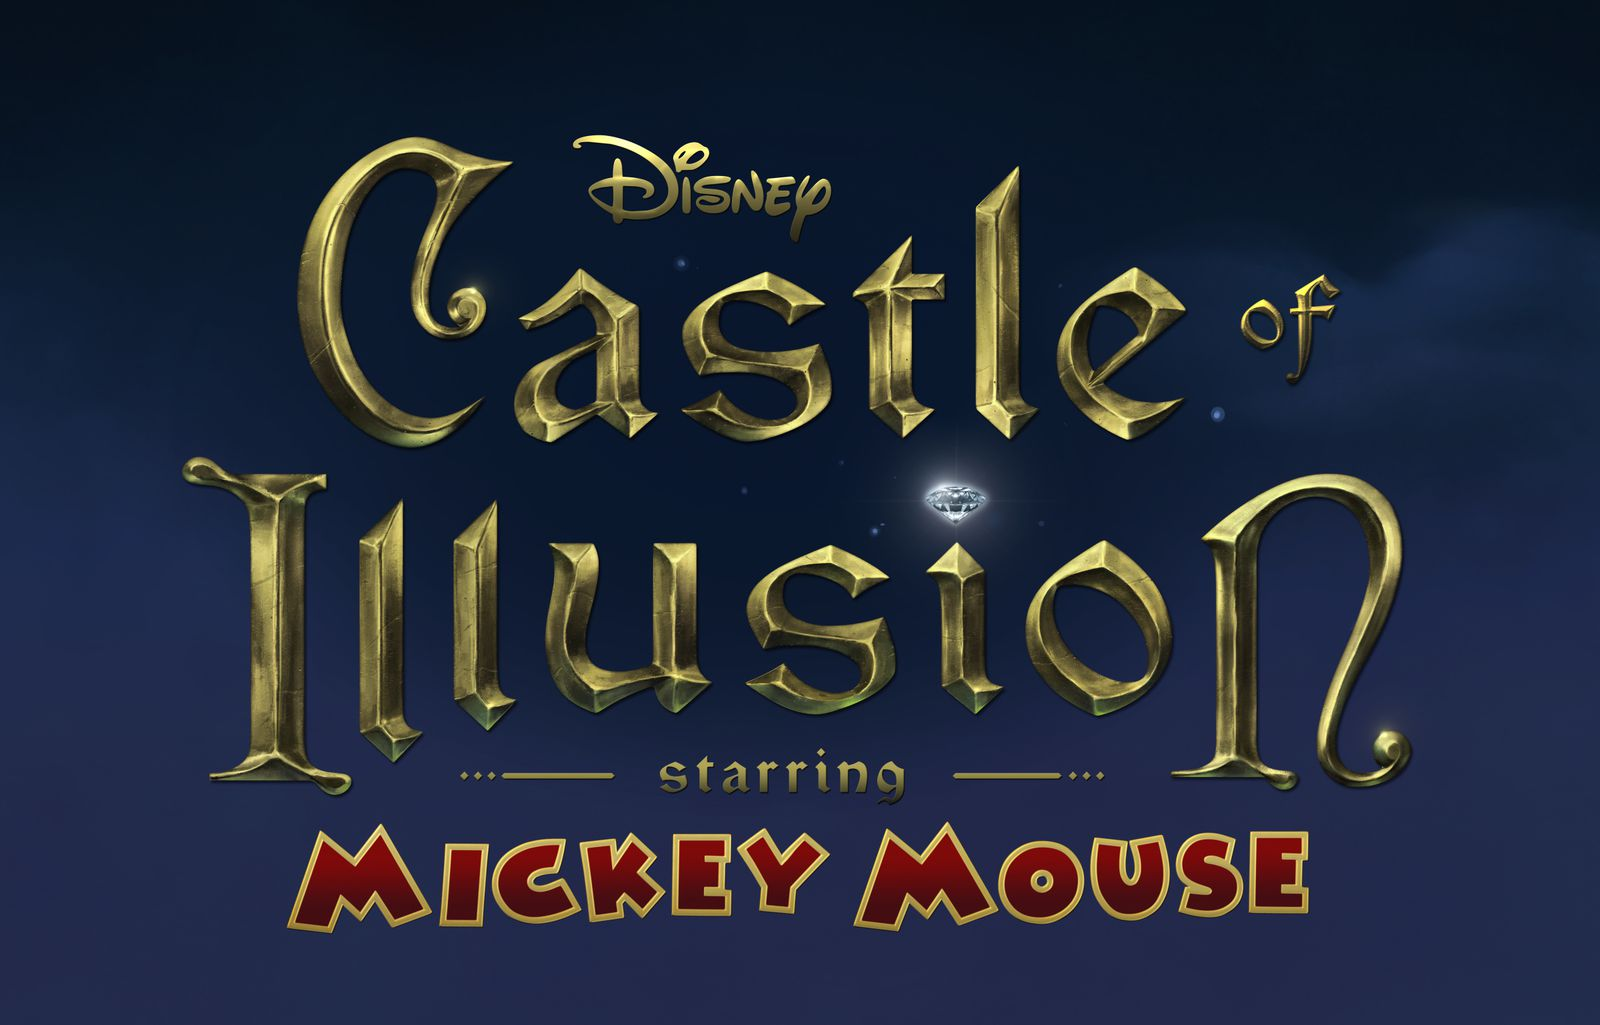 Castle of Illusion Starring Mickey Mouse dévoilé